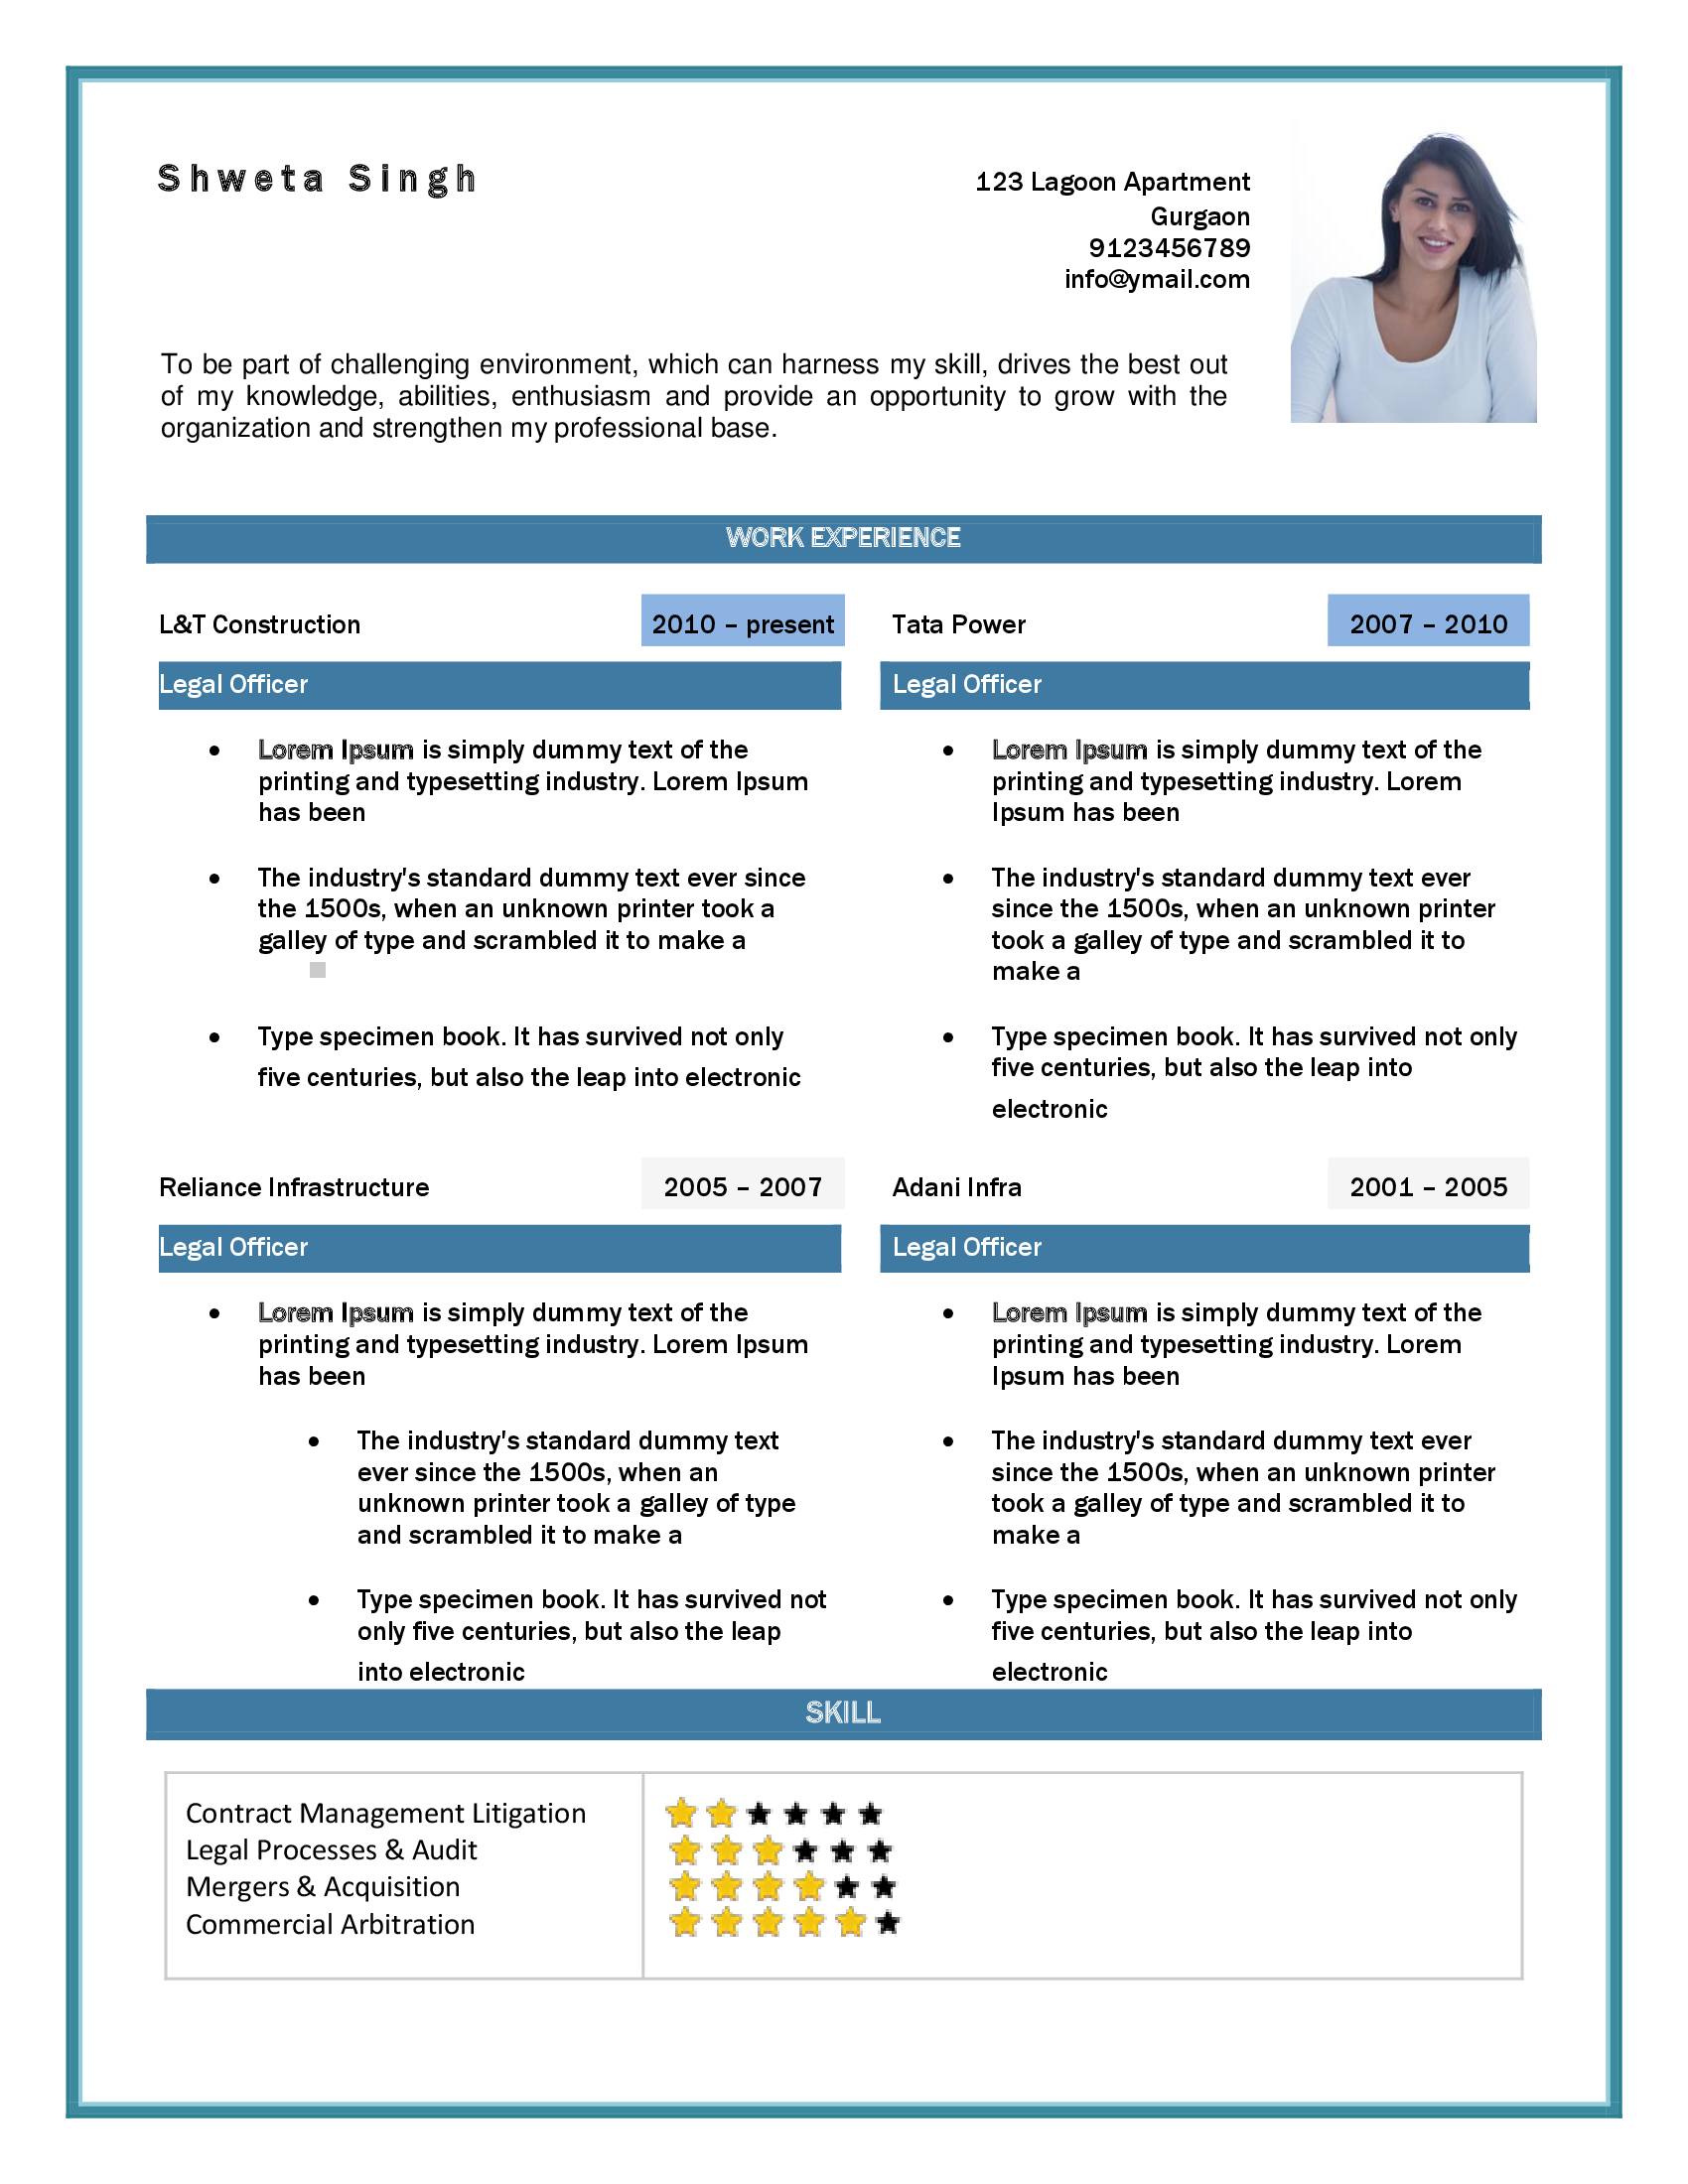 Opposenewapstandardsus  Unique Hr Executive Resume  Resume For Hr Executive  Hr Executive  With Fascinating Enter Your Details With Attractive Free Resume Builder Templates Also Sales Resume Example In Addition Resume Templates Open Office And Resume Parsing As Well As Sample Resumes  Additionally Active Verbs For Resume From Resumetemplatesamplescom With Opposenewapstandardsus  Fascinating Hr Executive Resume  Resume For Hr Executive  Hr Executive  With Attractive Enter Your Details And Unique Free Resume Builder Templates Also Sales Resume Example In Addition Resume Templates Open Office From Resumetemplatesamplescom